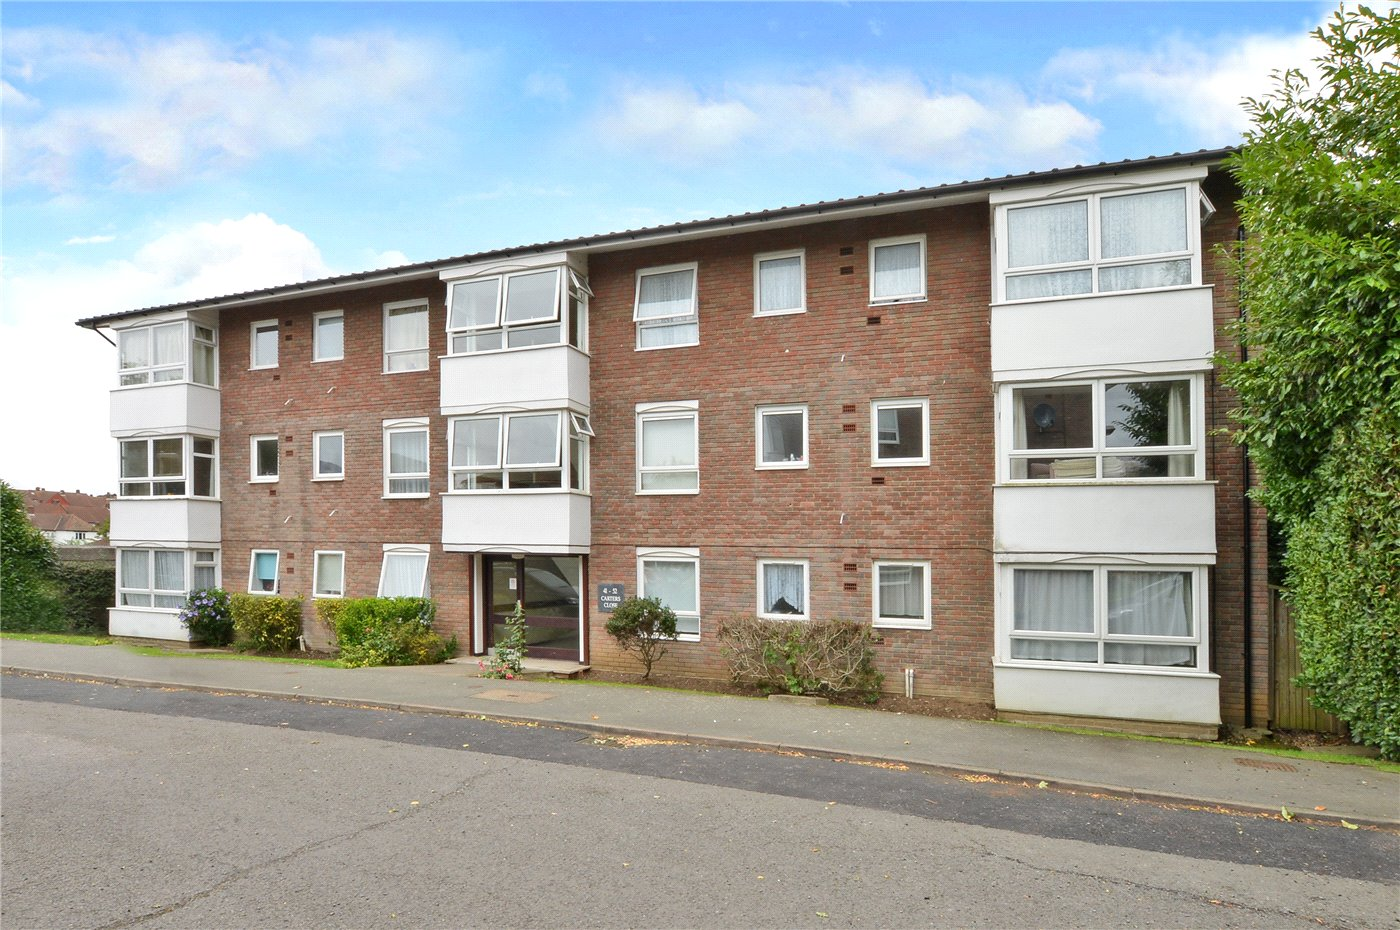 2 Bedrooms Flat for sale in Carters Close, Worcester Park, KT4